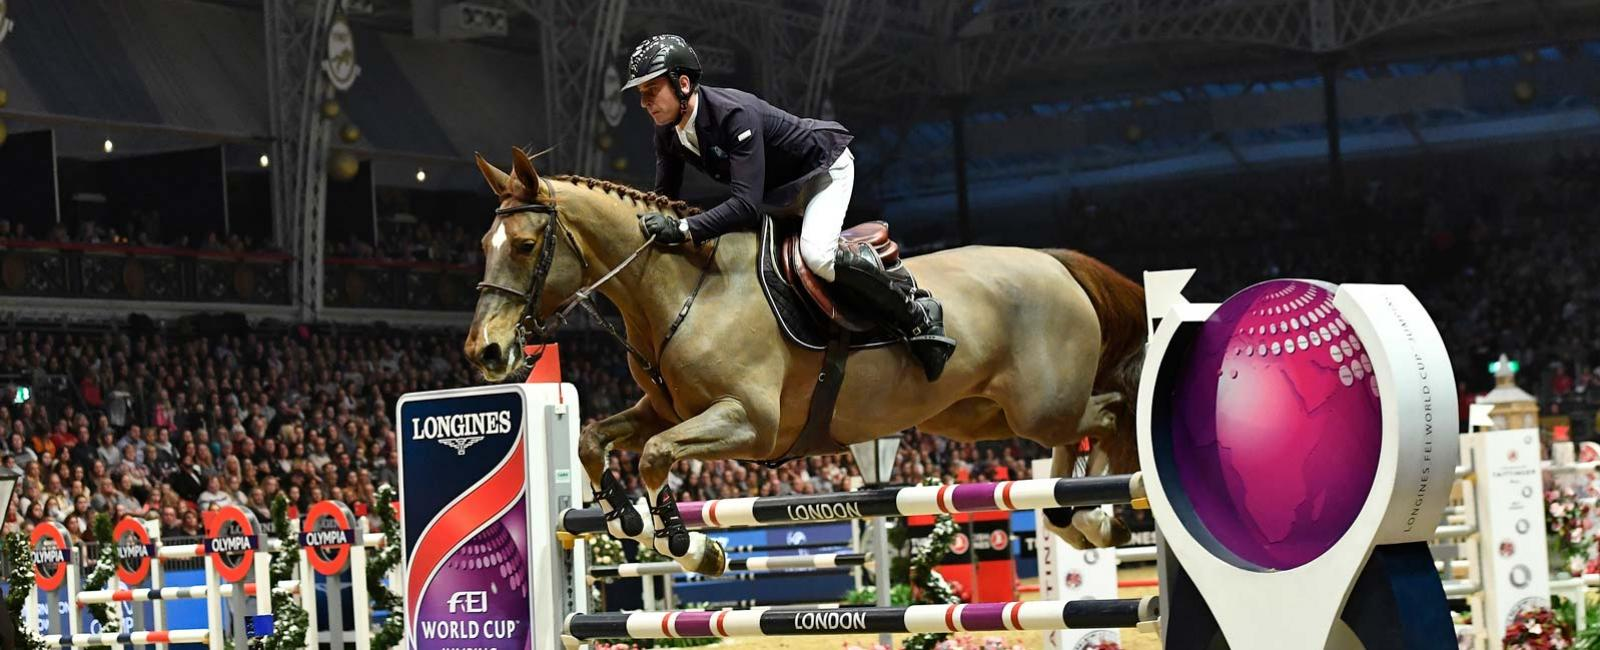 Longines FEI World Cup Western European League - London Olympia Horse show; Jumping; 2017